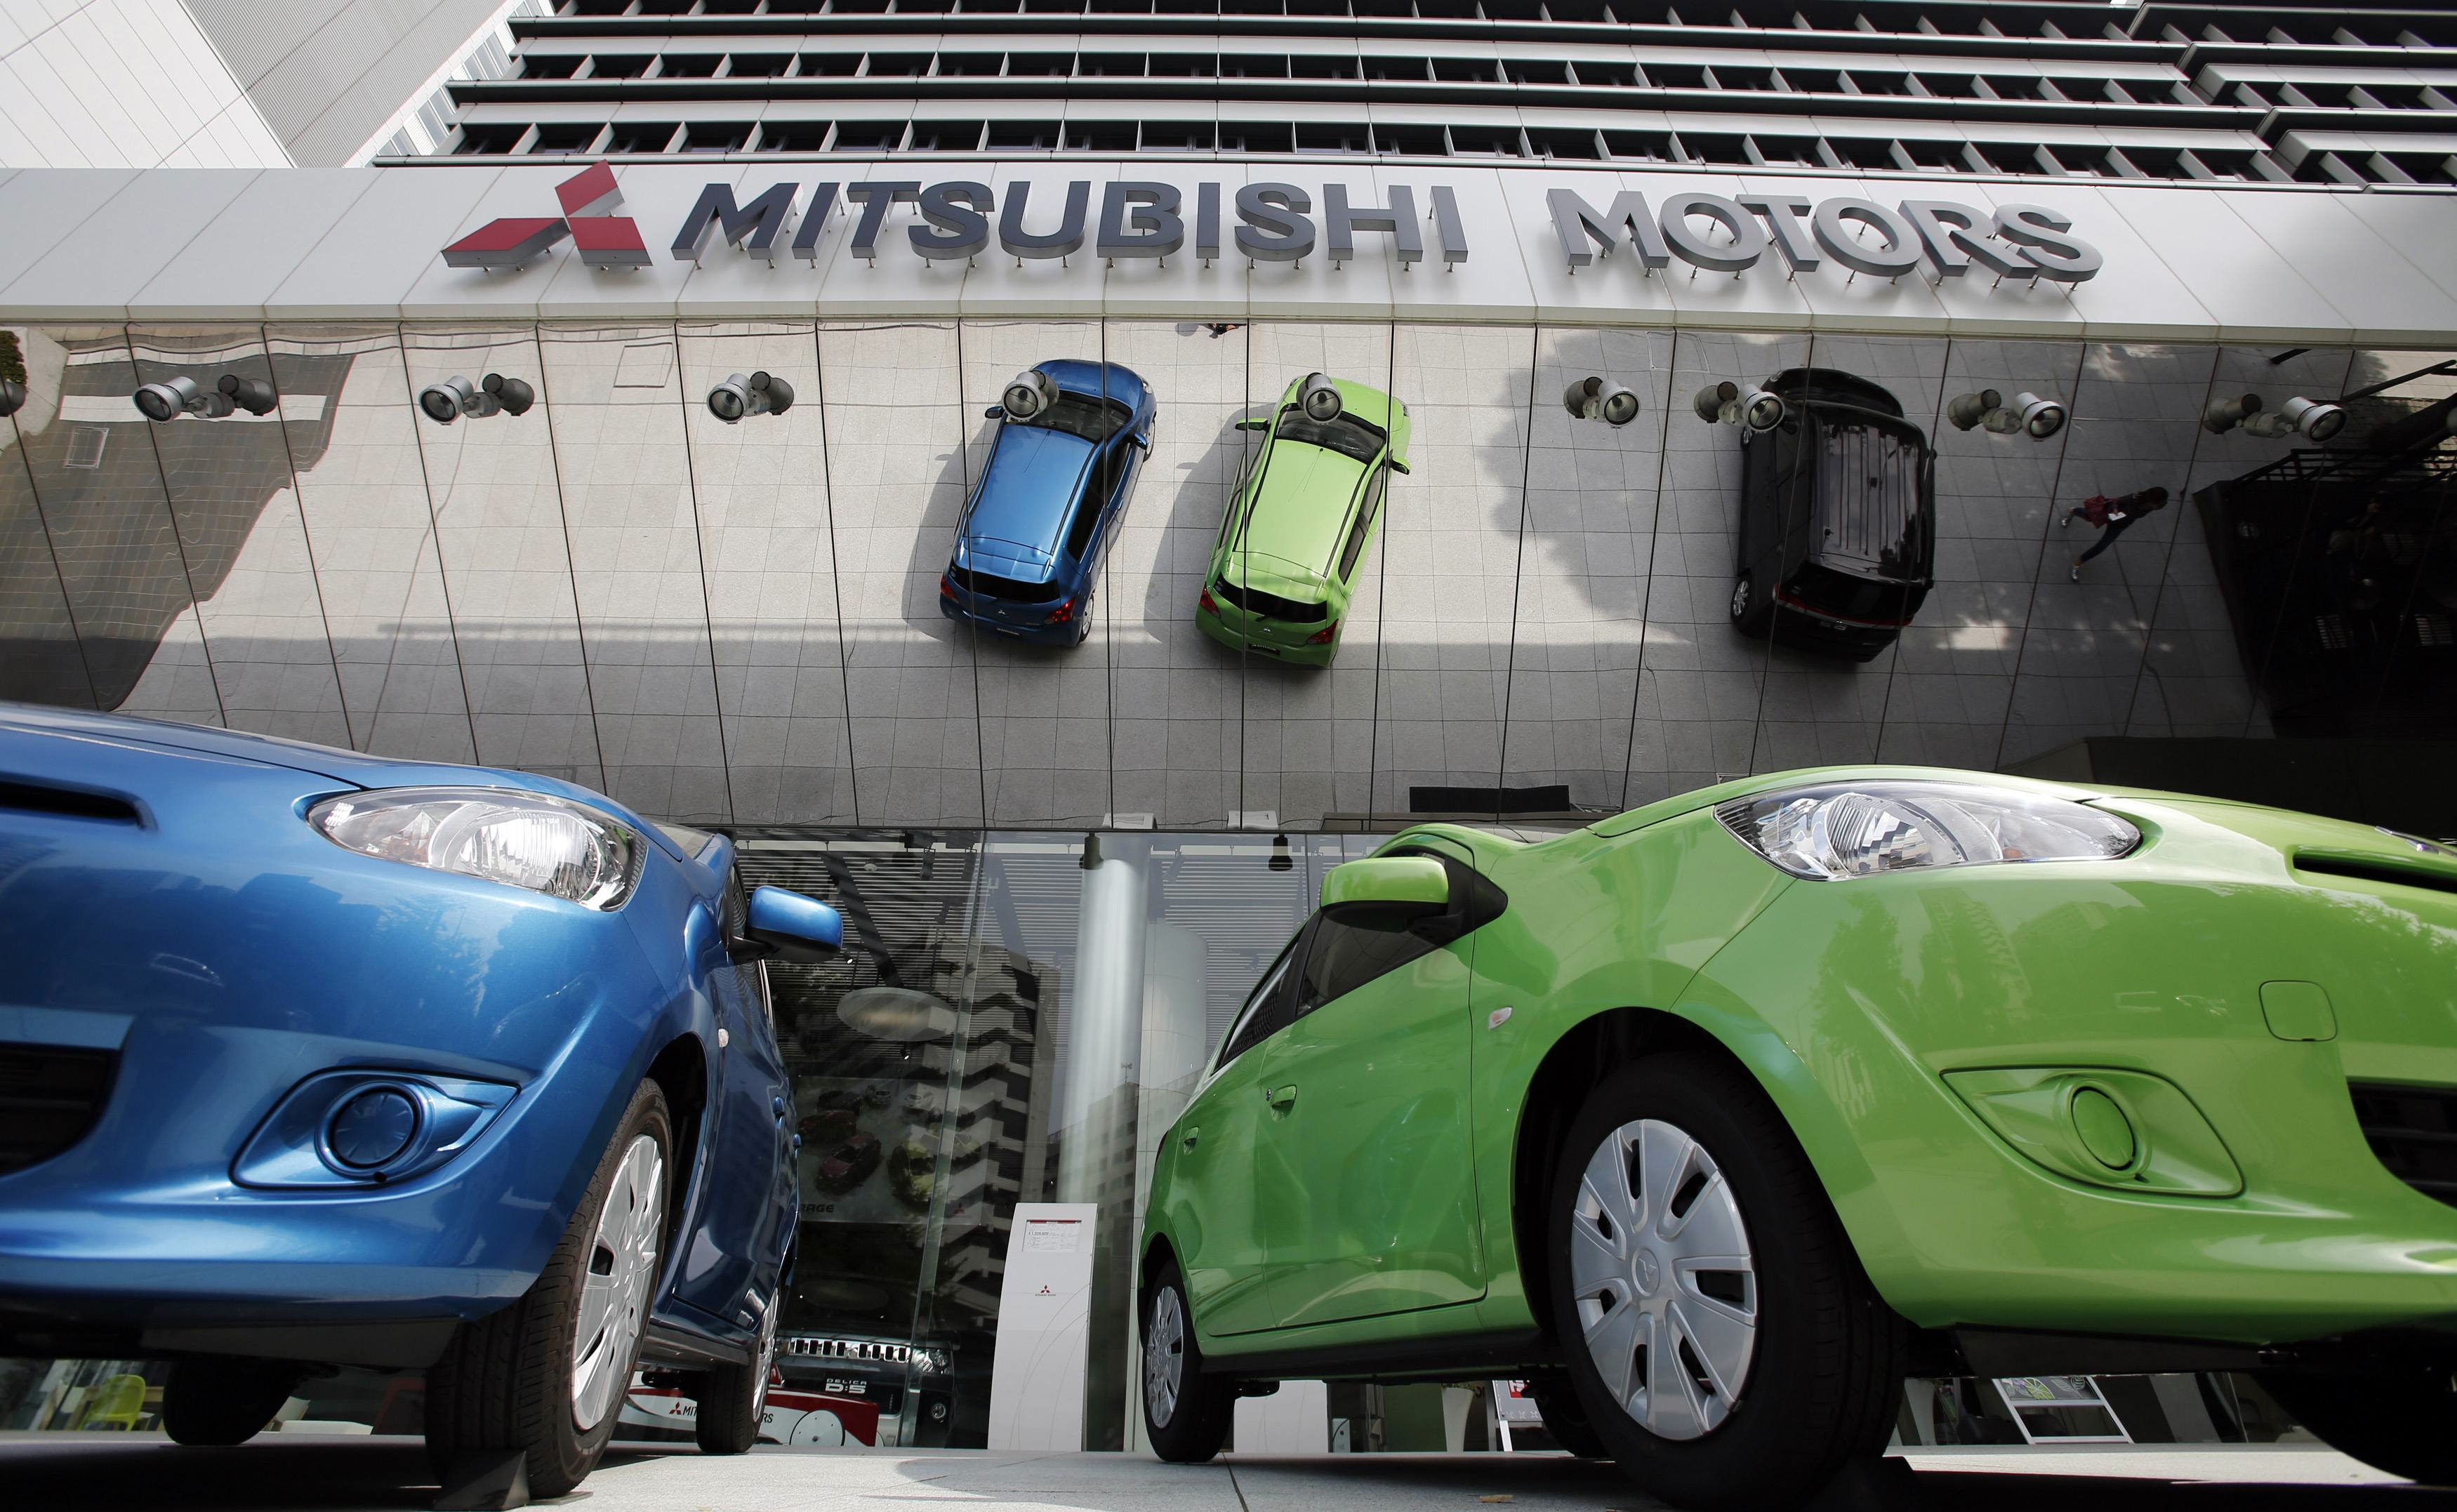 Japan Gdp Growth In 2013 Falls To 0 6 In The Second